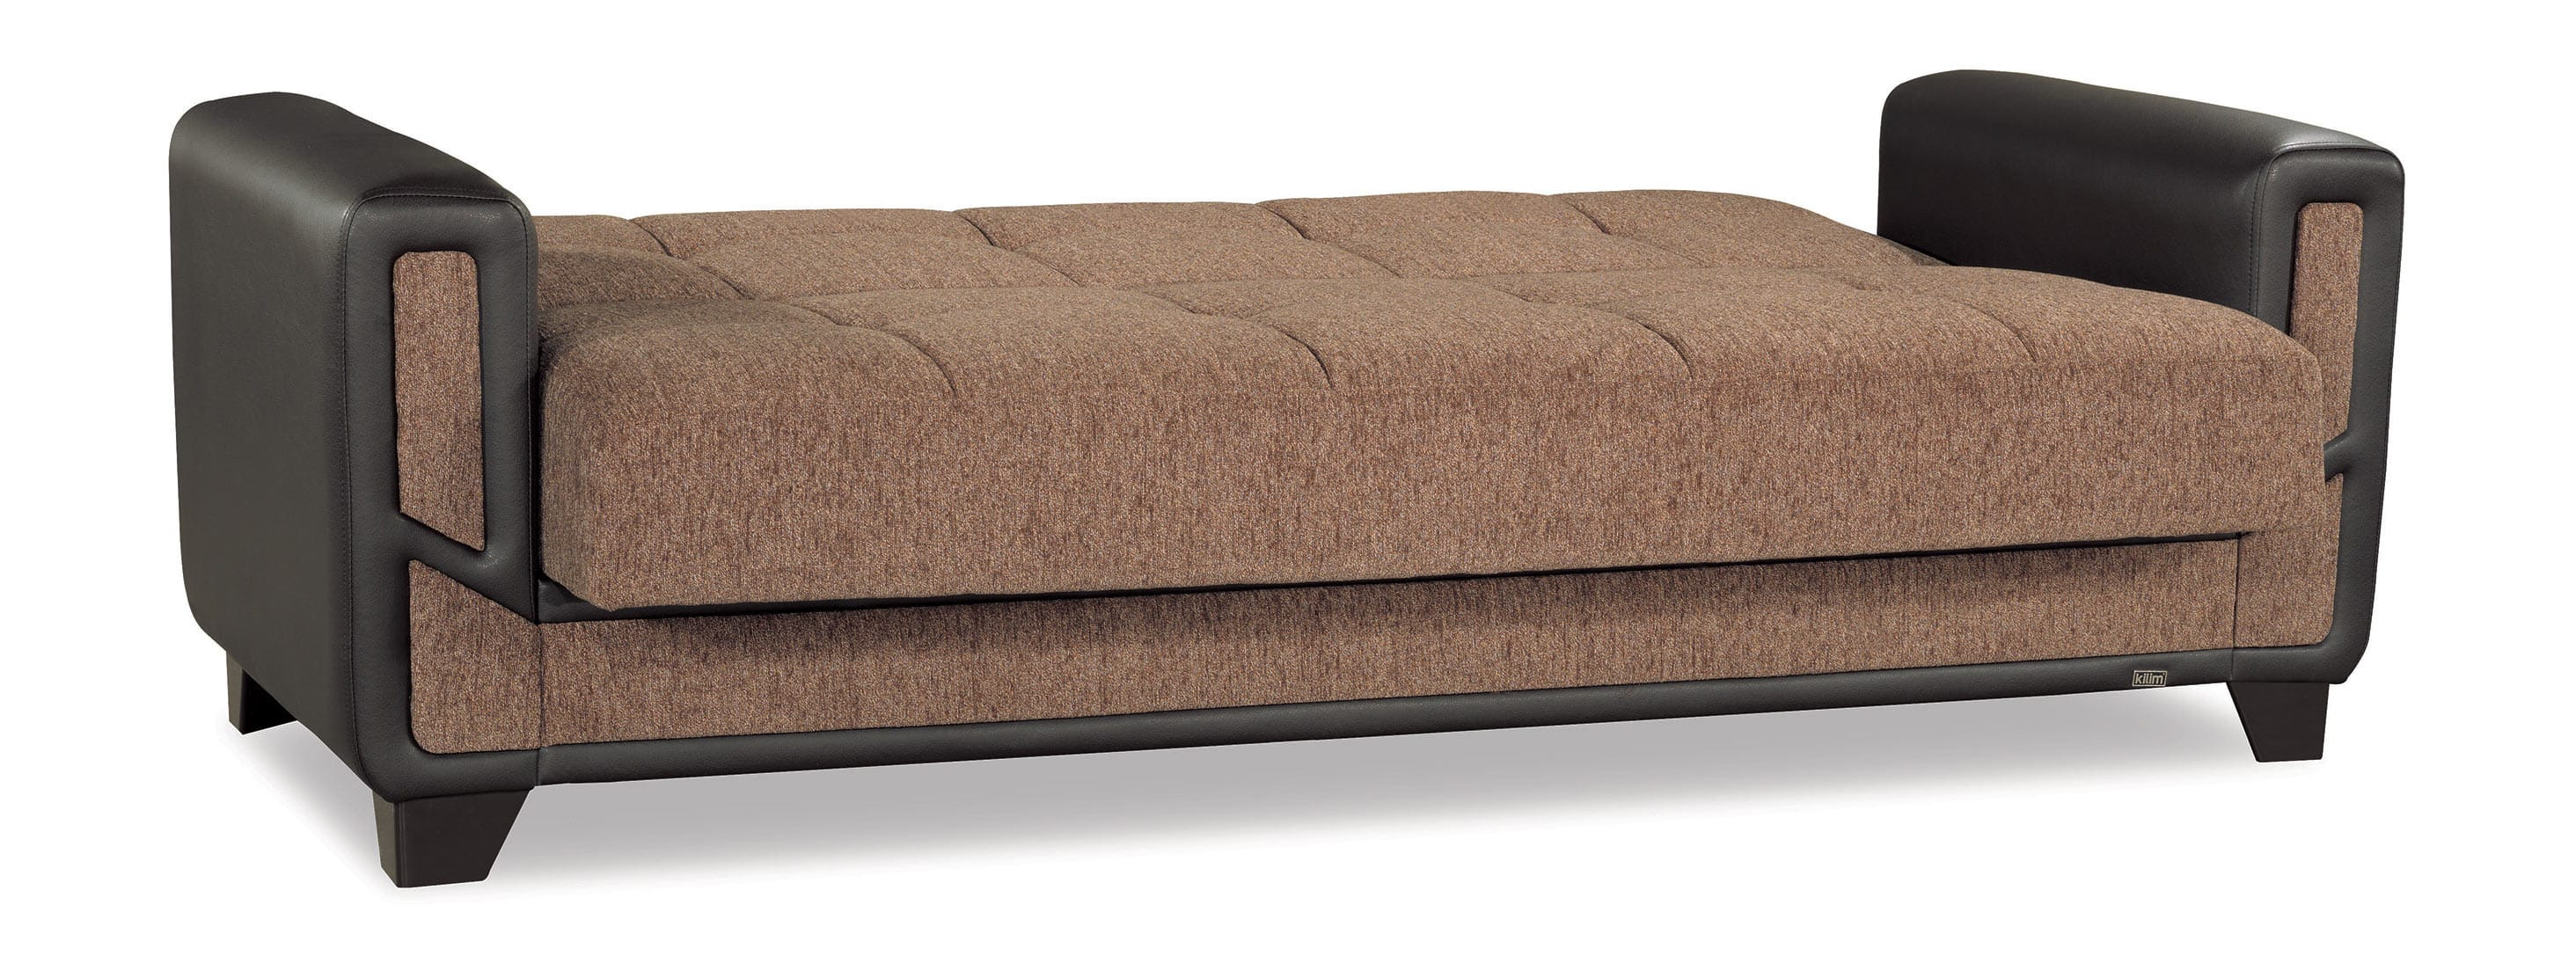 Mondo Modern Brown Convertible Sofa Bed by Casamode